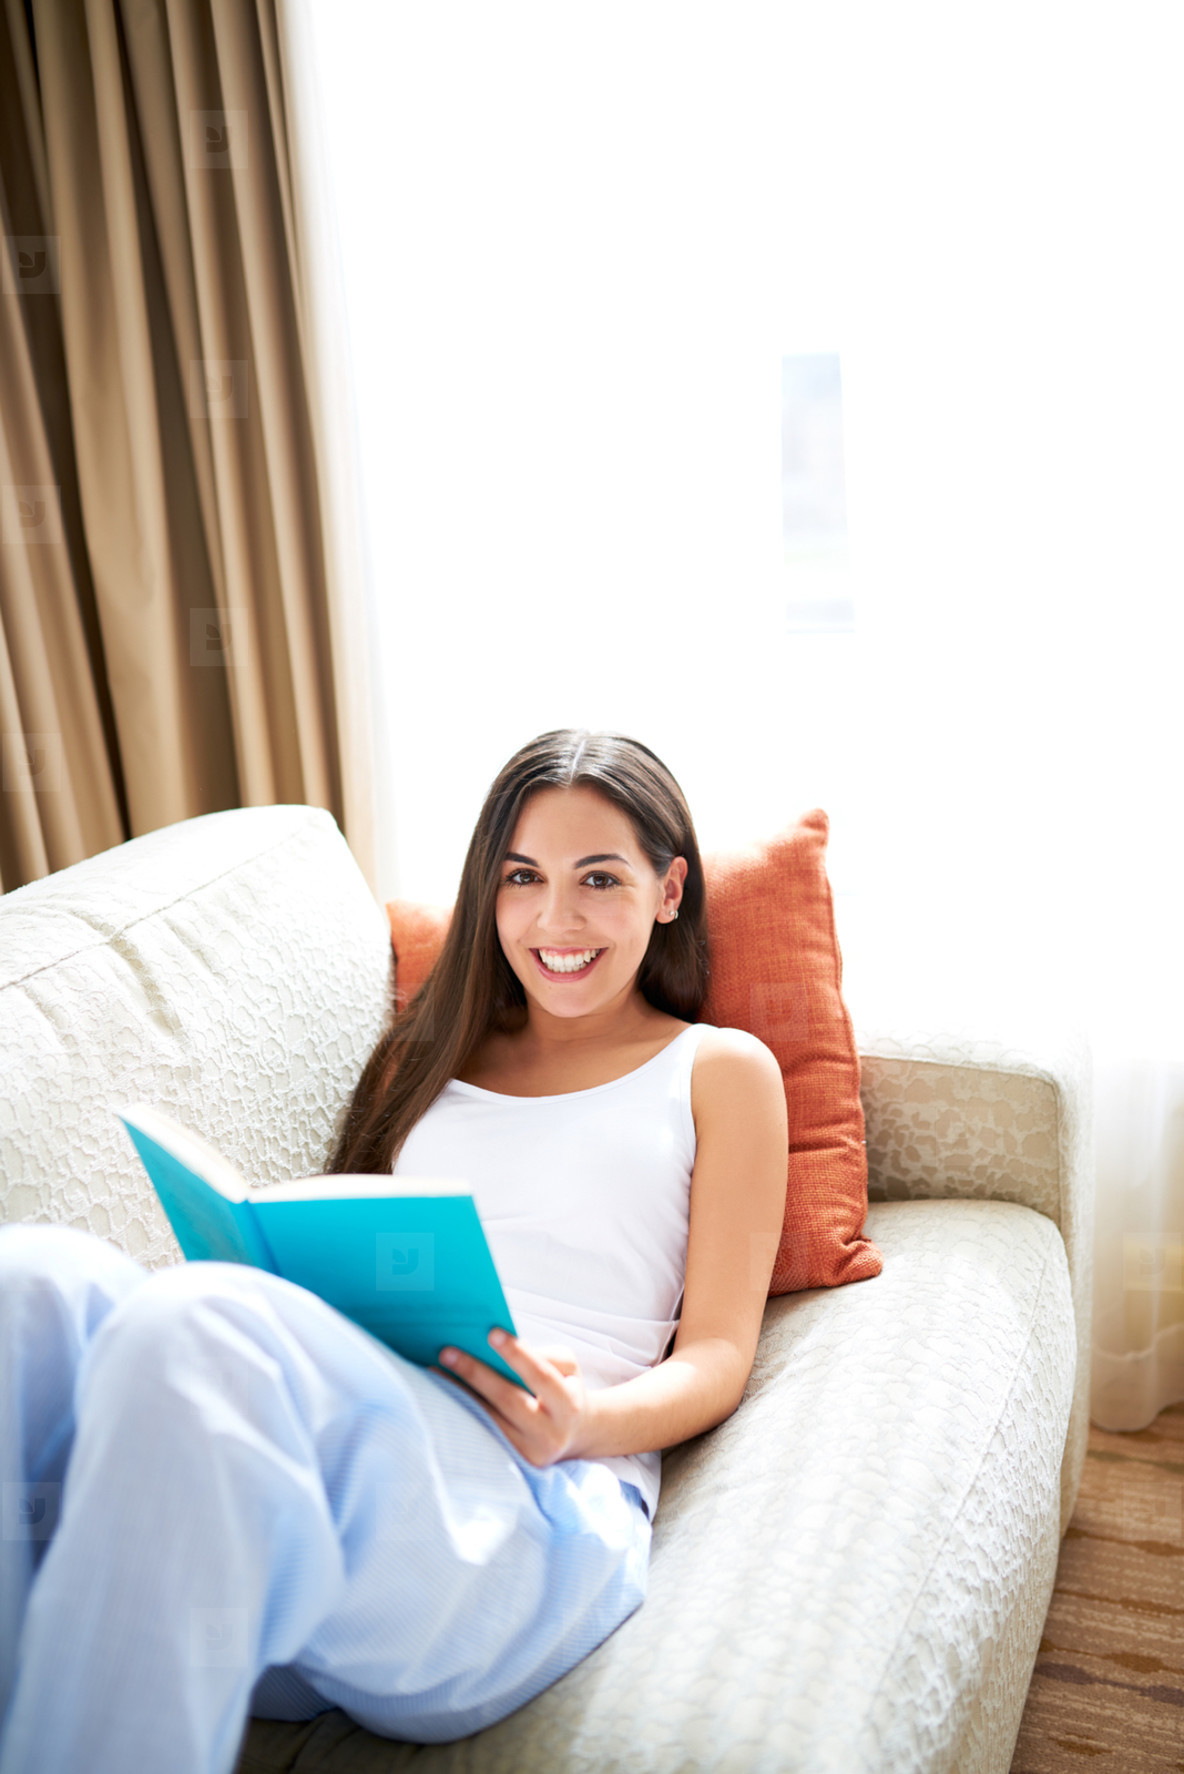 Woman reclining against orange cushion looking up smiling